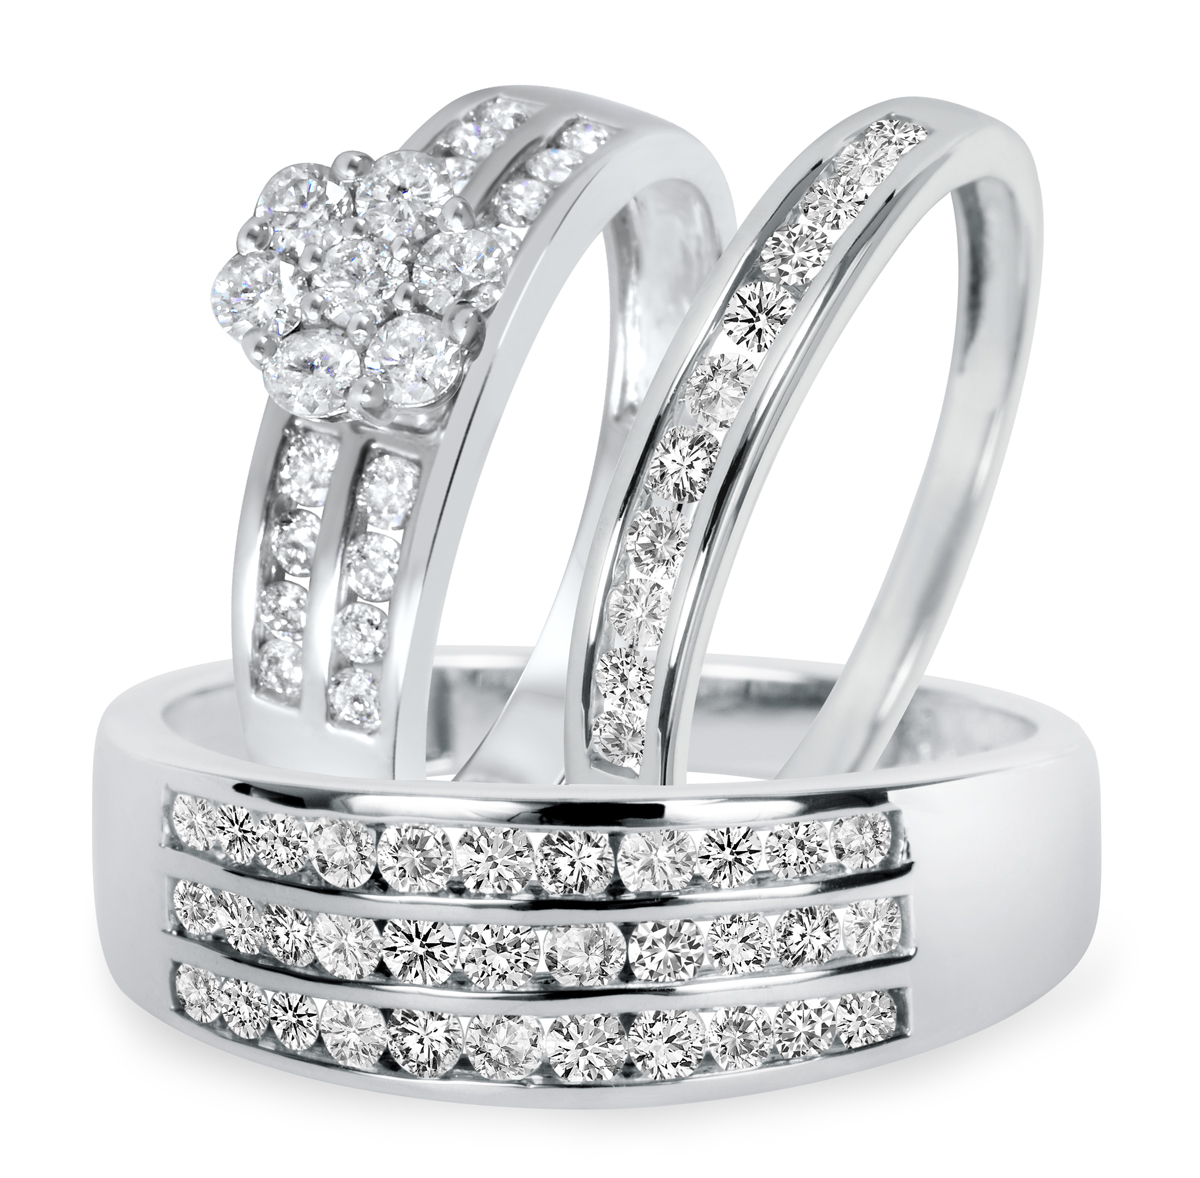 CT. T.W. Diamond Trio Matching Wedding Ring Set 14K White Gold